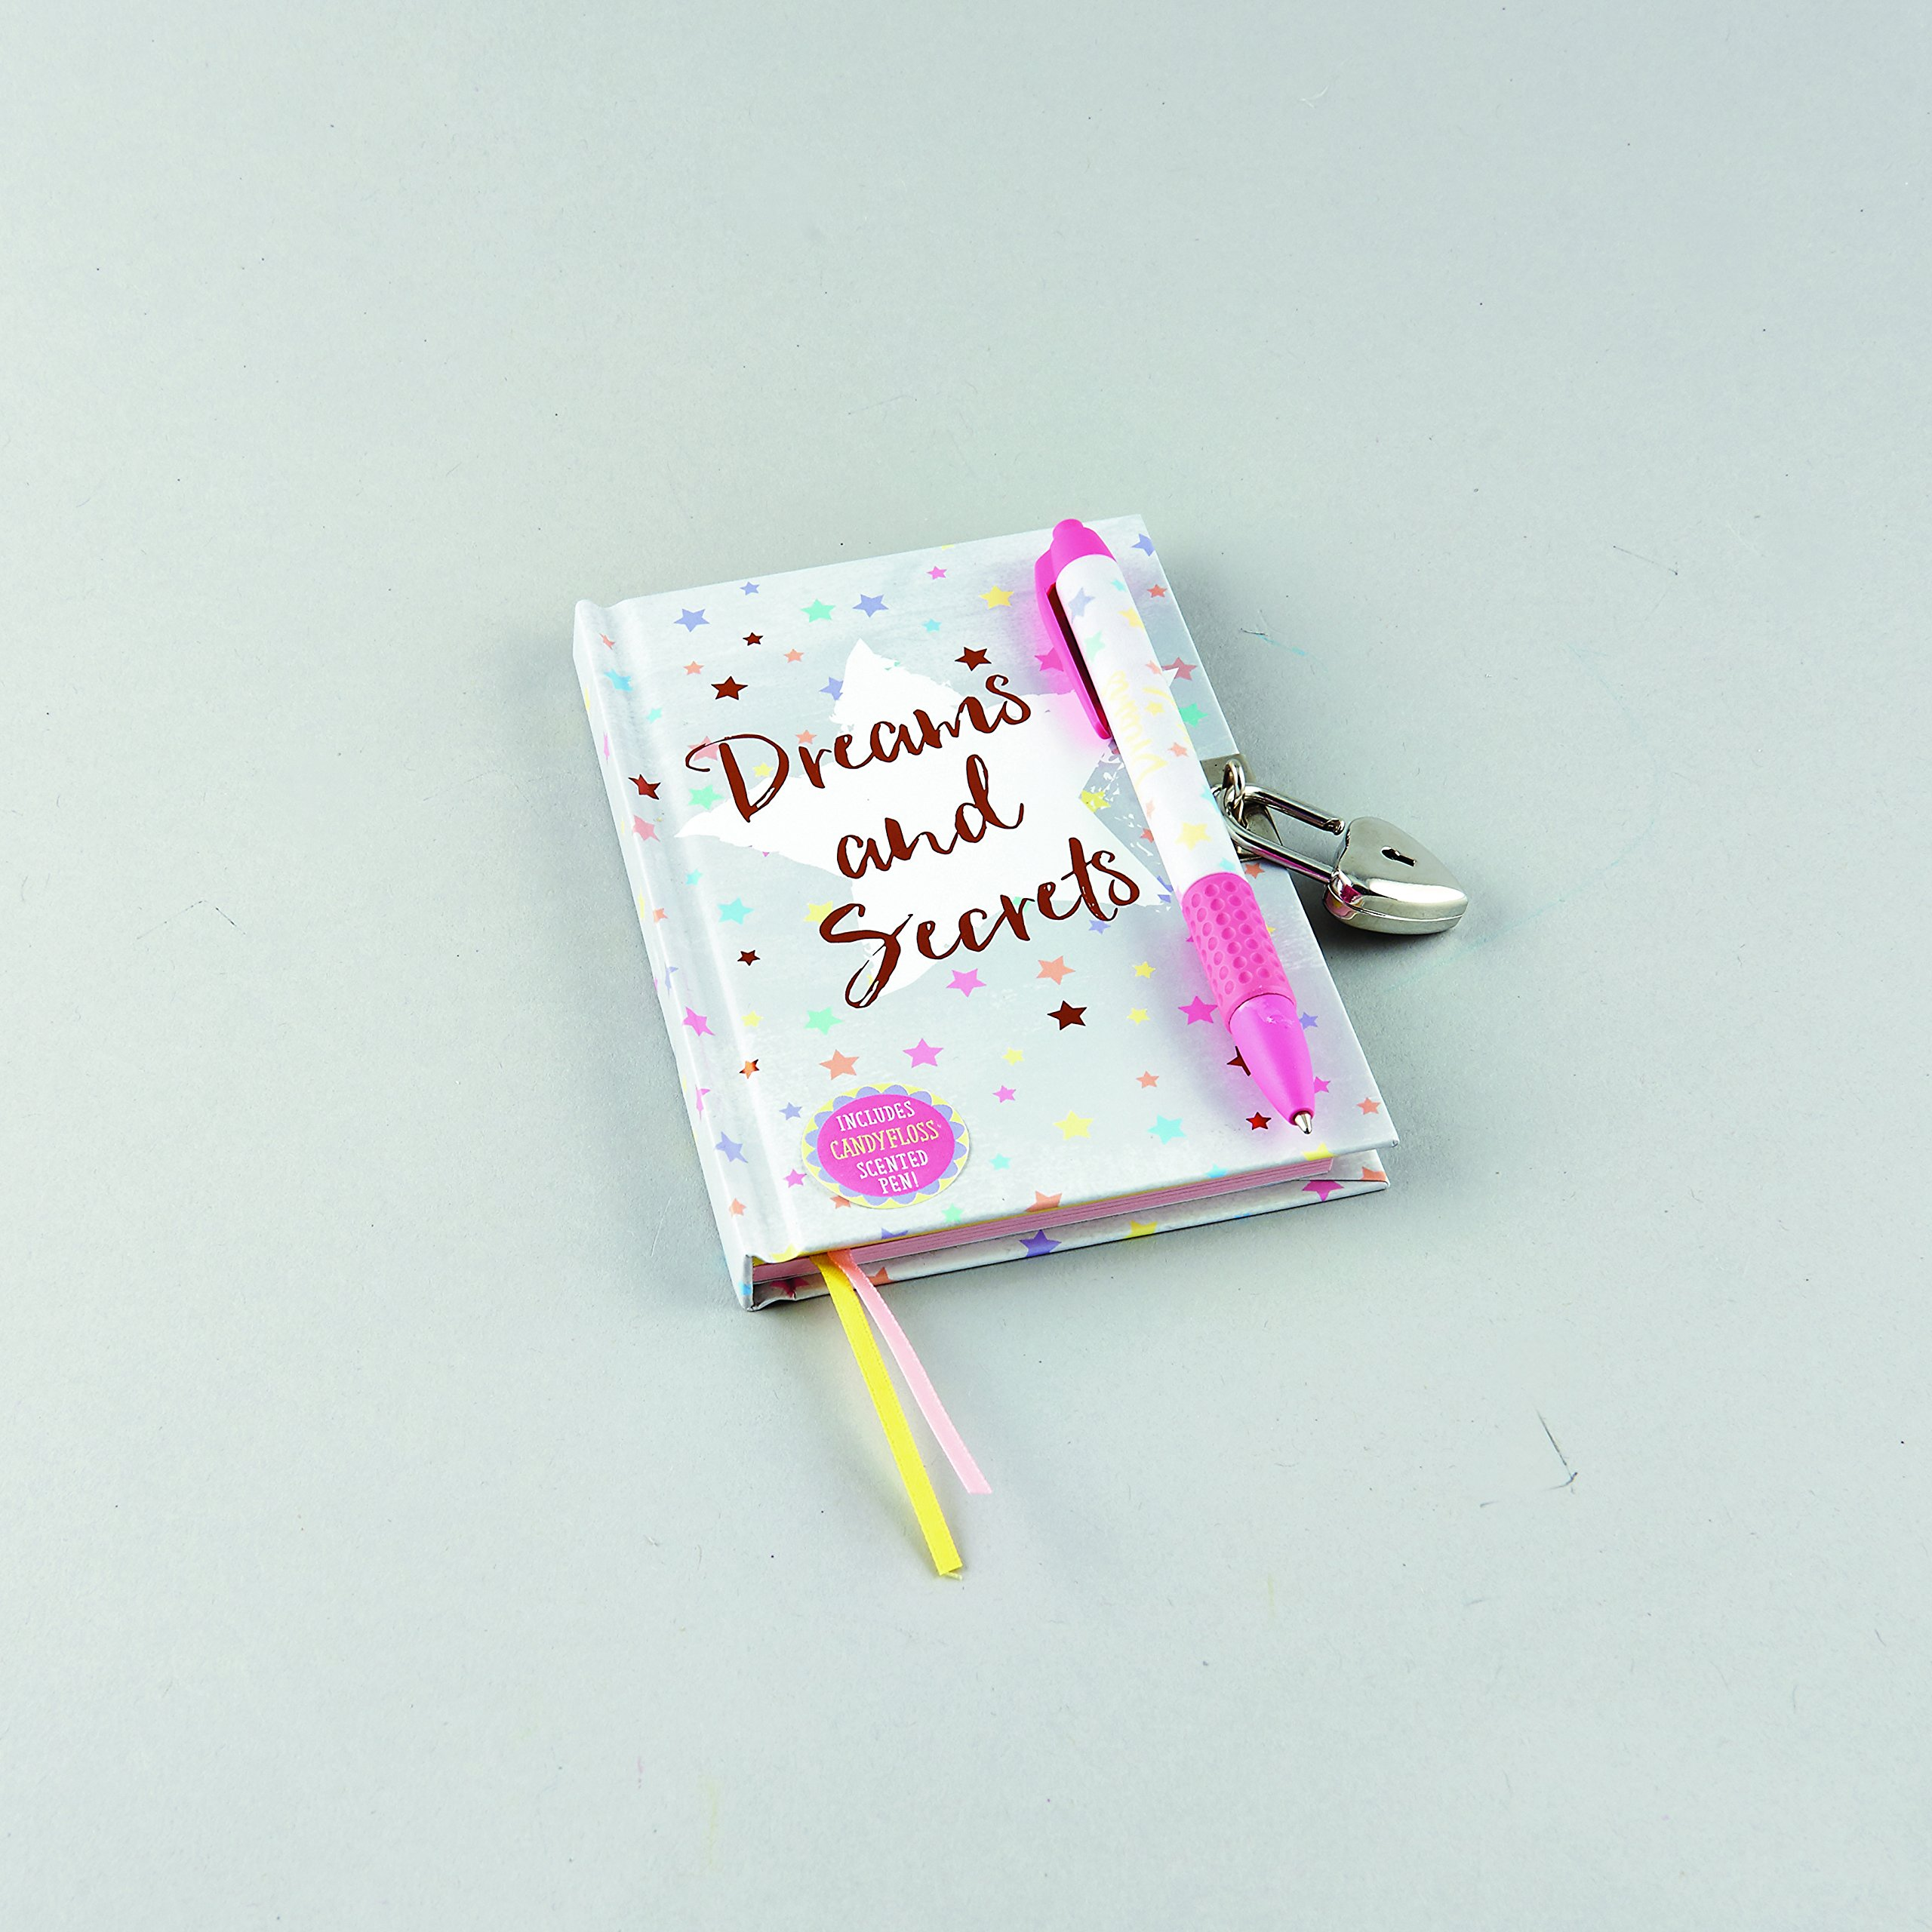 Floss & Rock Dreams & Secrets Lockable Diary With Snifty Scented Pen In Candy Floss